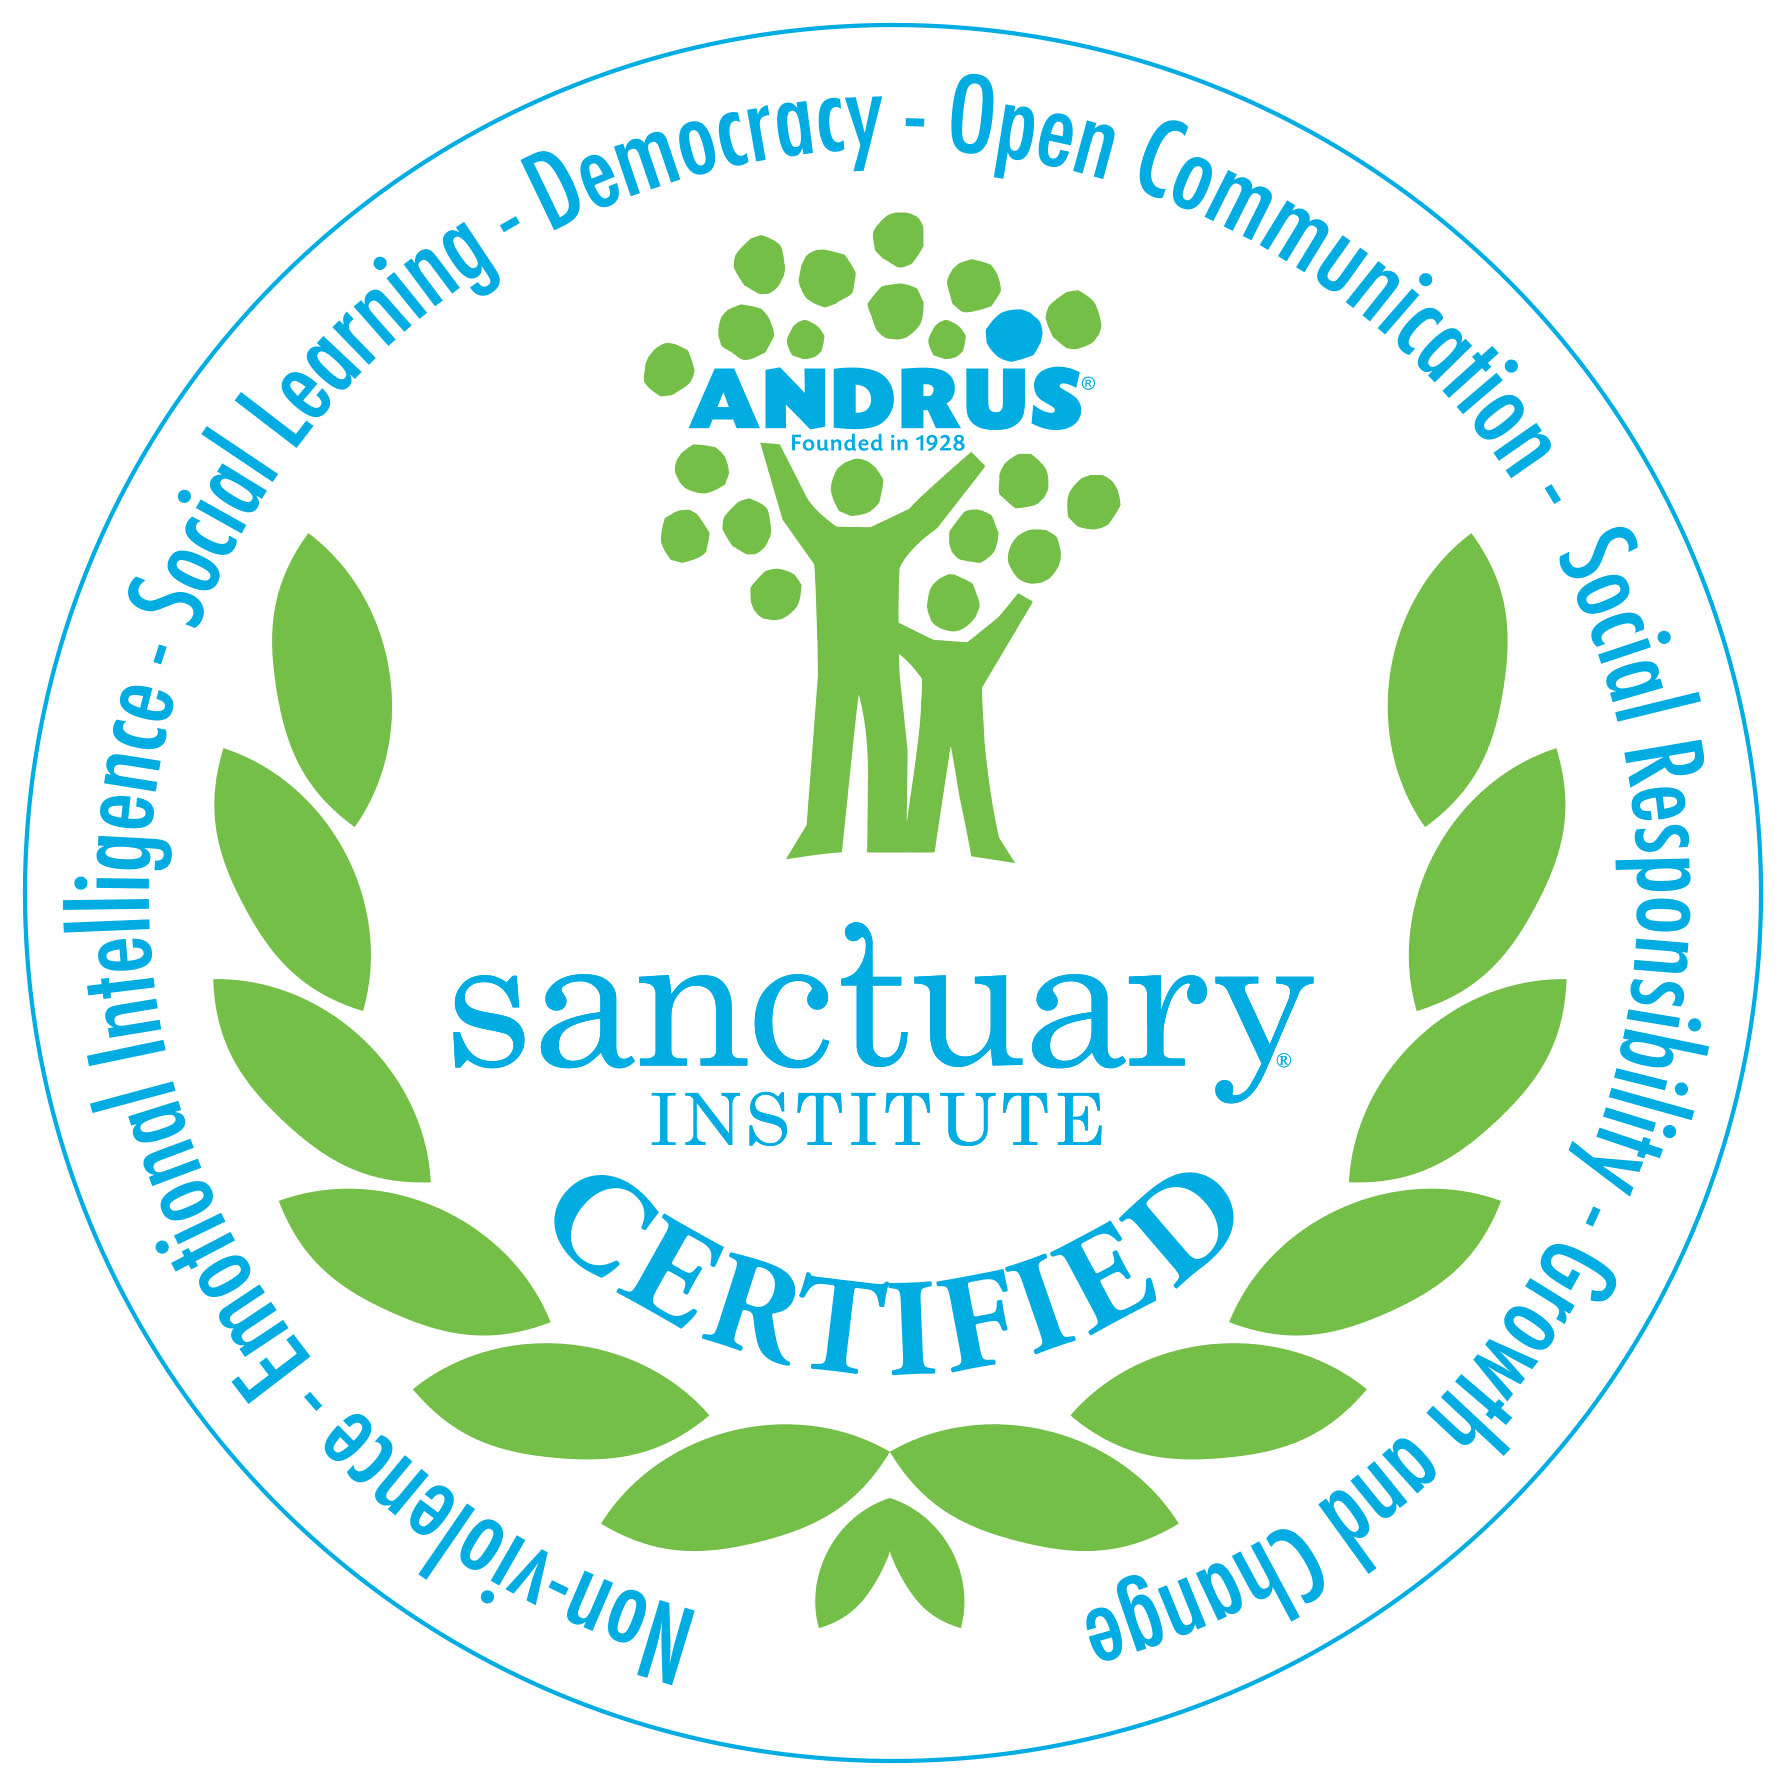 Sanctuary Institute Certified